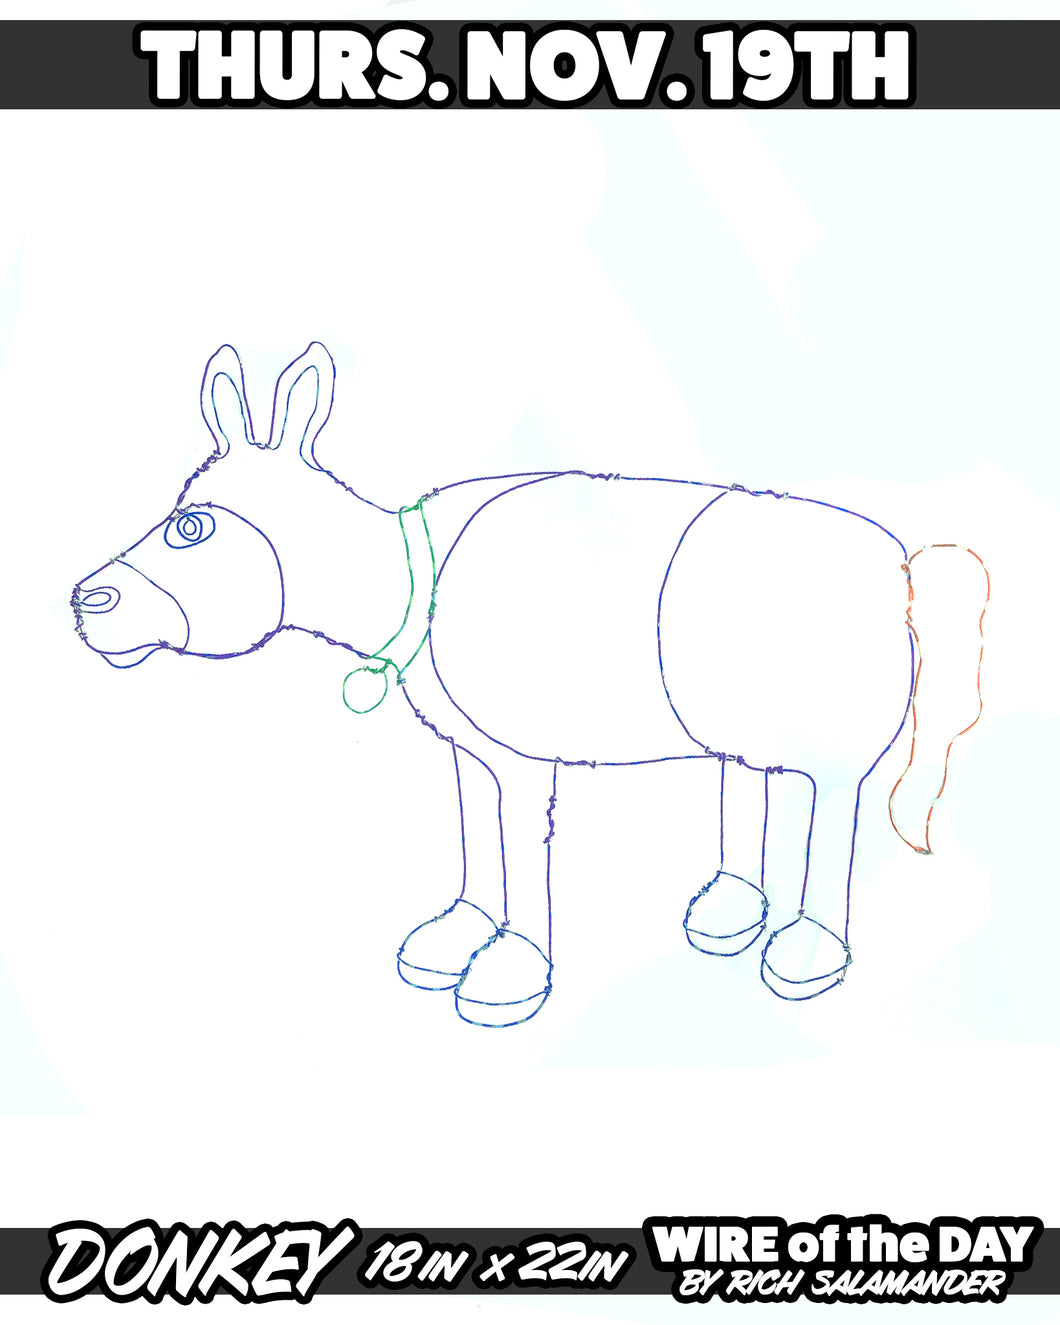 WIRE of the DAY DONKEY